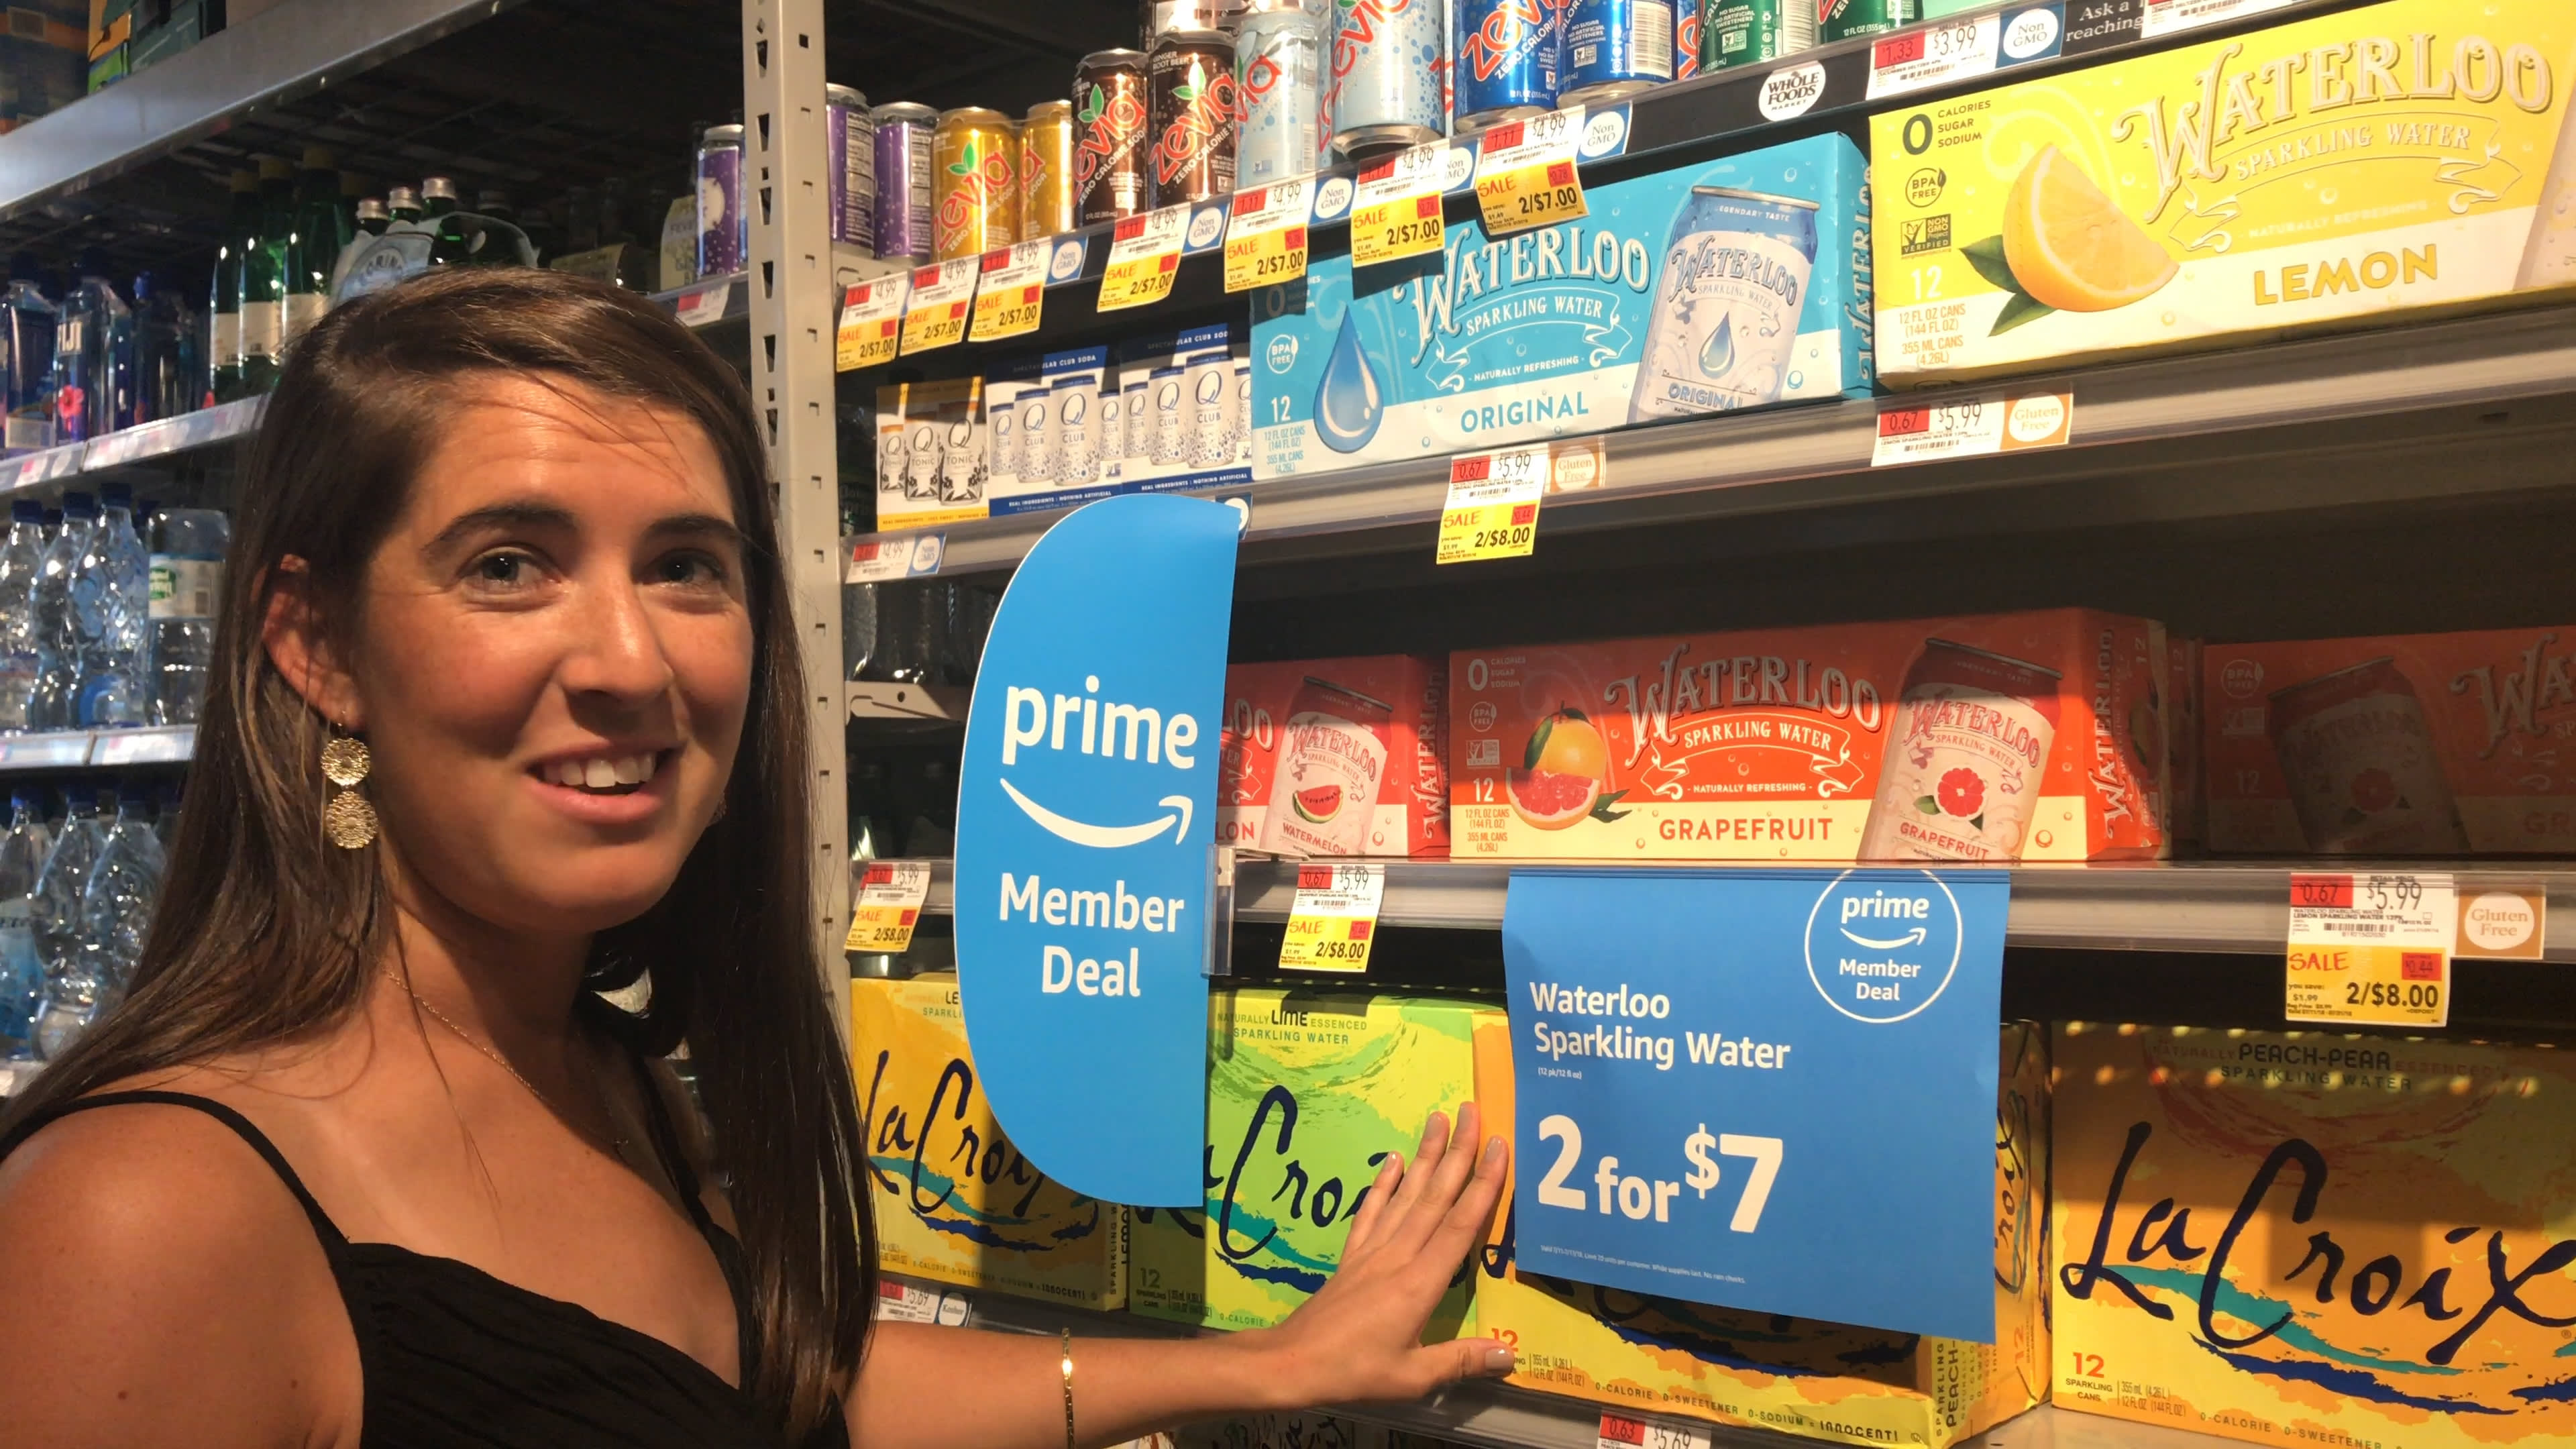 Amazon Kreditkarte Info Pros And Cons Of The Amazon Prime Rewards Credit Card